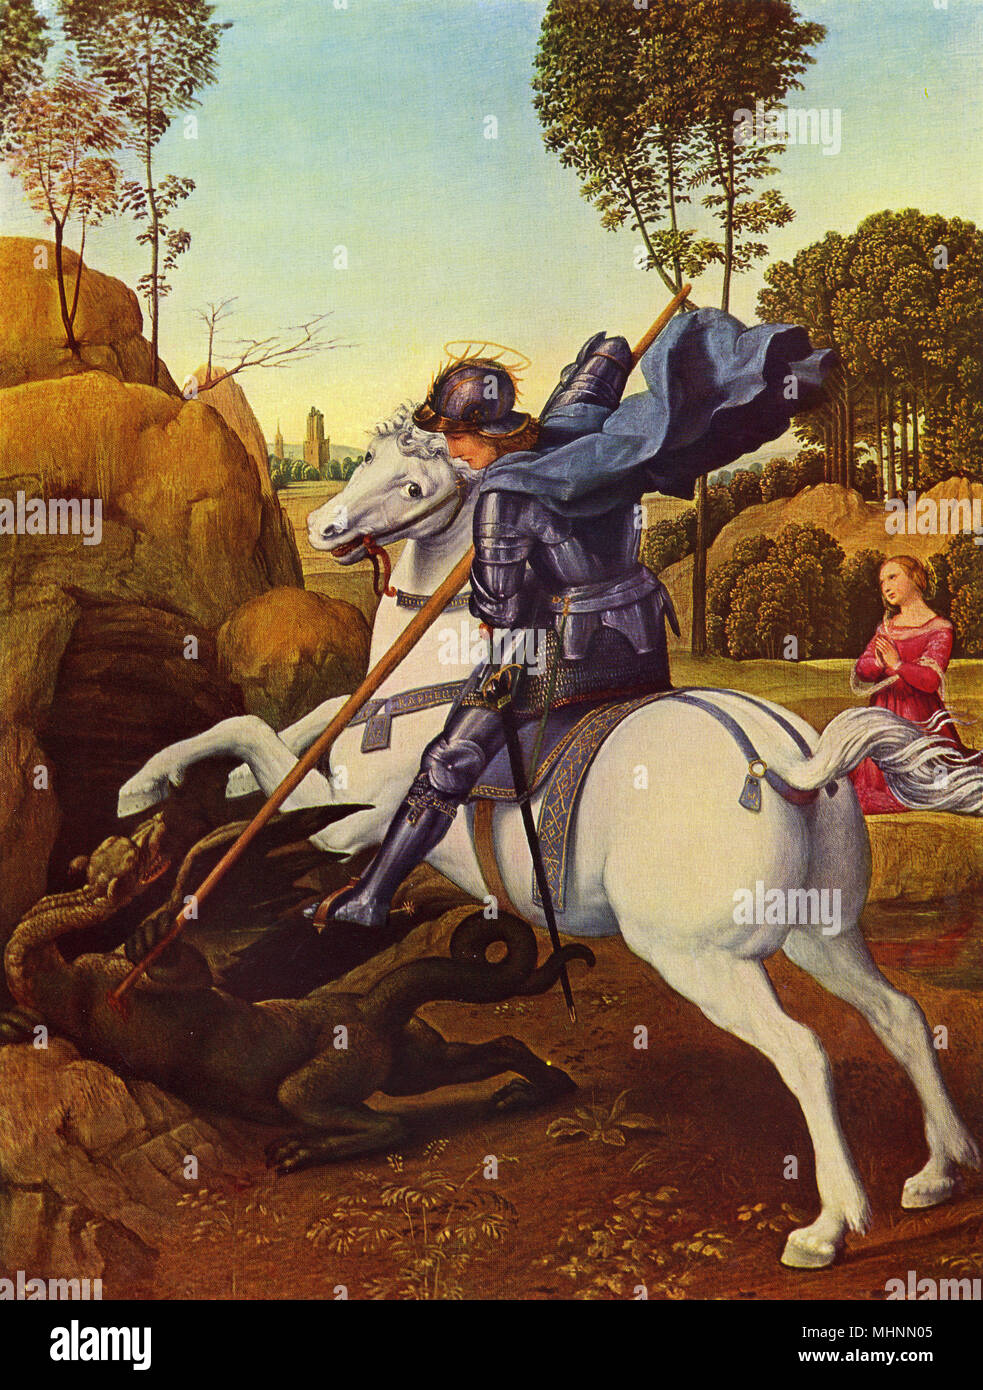 Saint George and the Dragon, by Raphael, circa 1506, Italian Renaissance painting, oil on panel. George was patron saint of England. Raphael was commissioned to create this as a gift for the envoy of the Tudor King Henry VII.     Date: circa 1506 - Stock Image